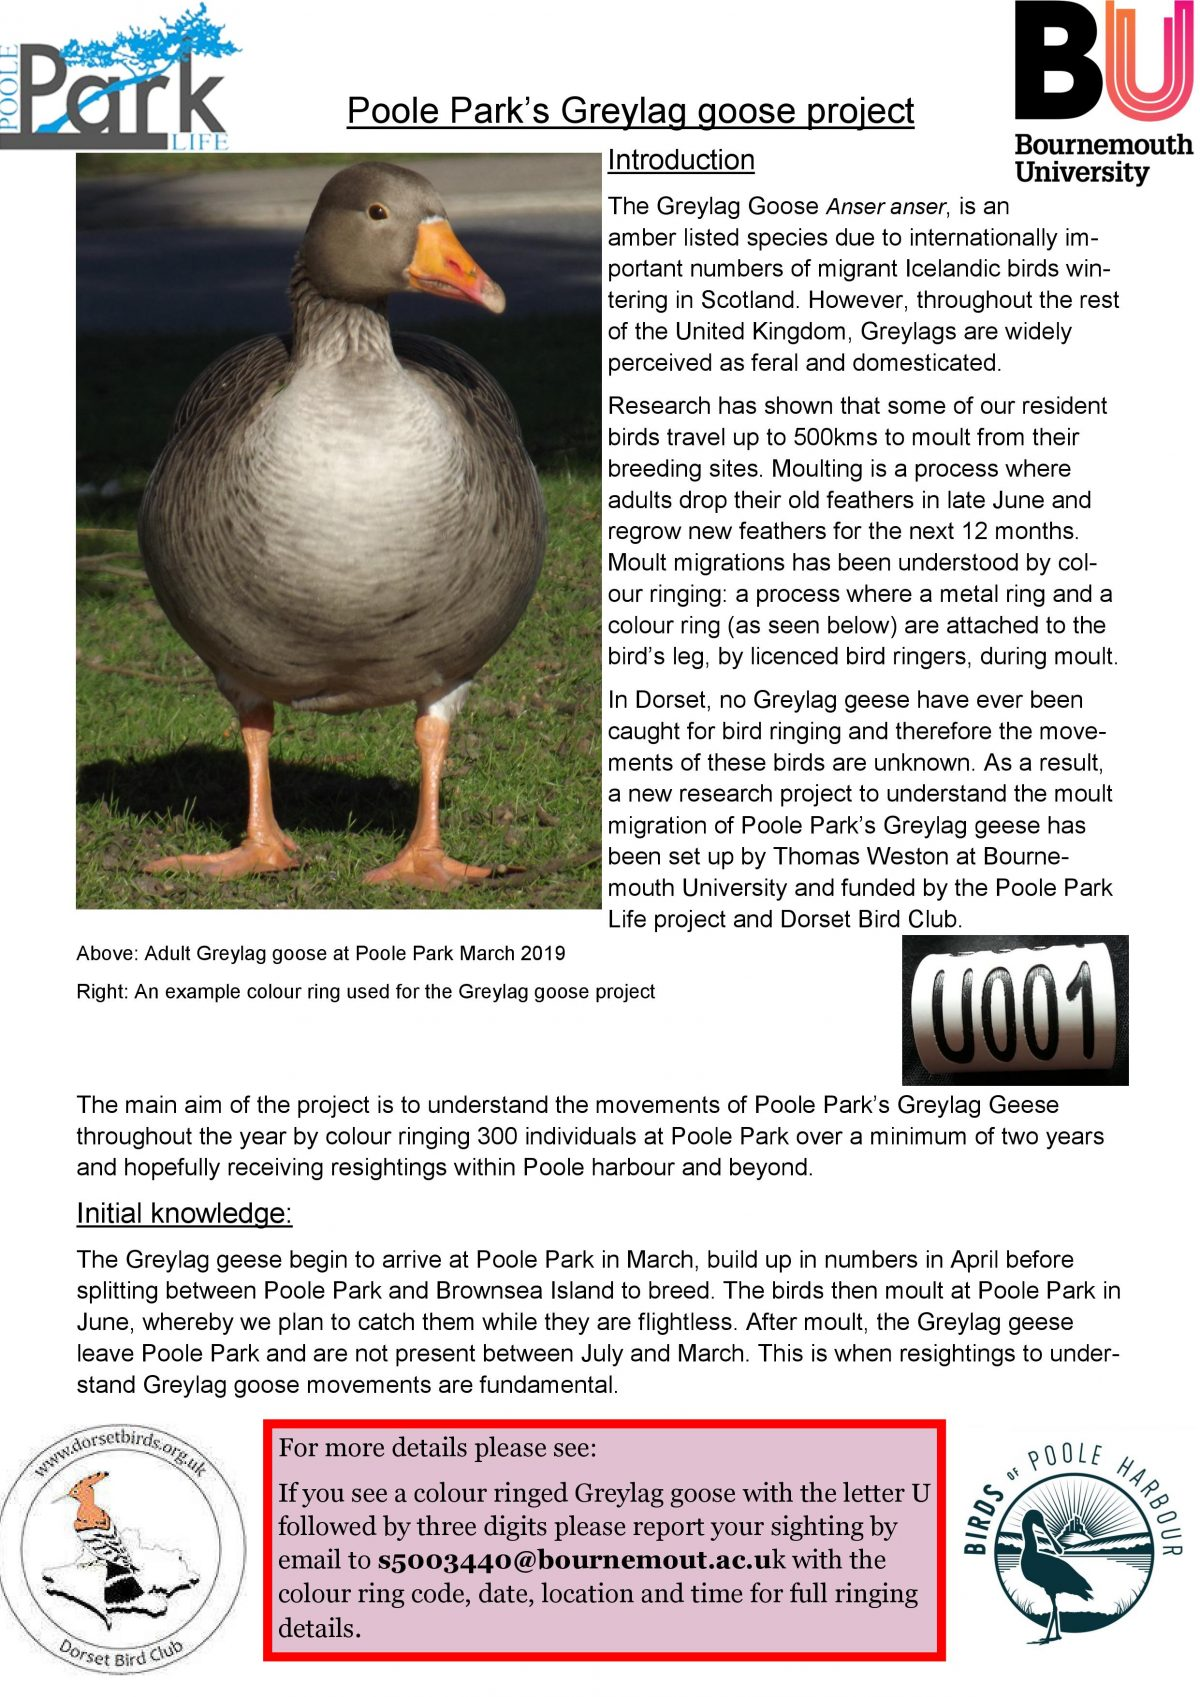 Poole Park's Greylag Goose project poster